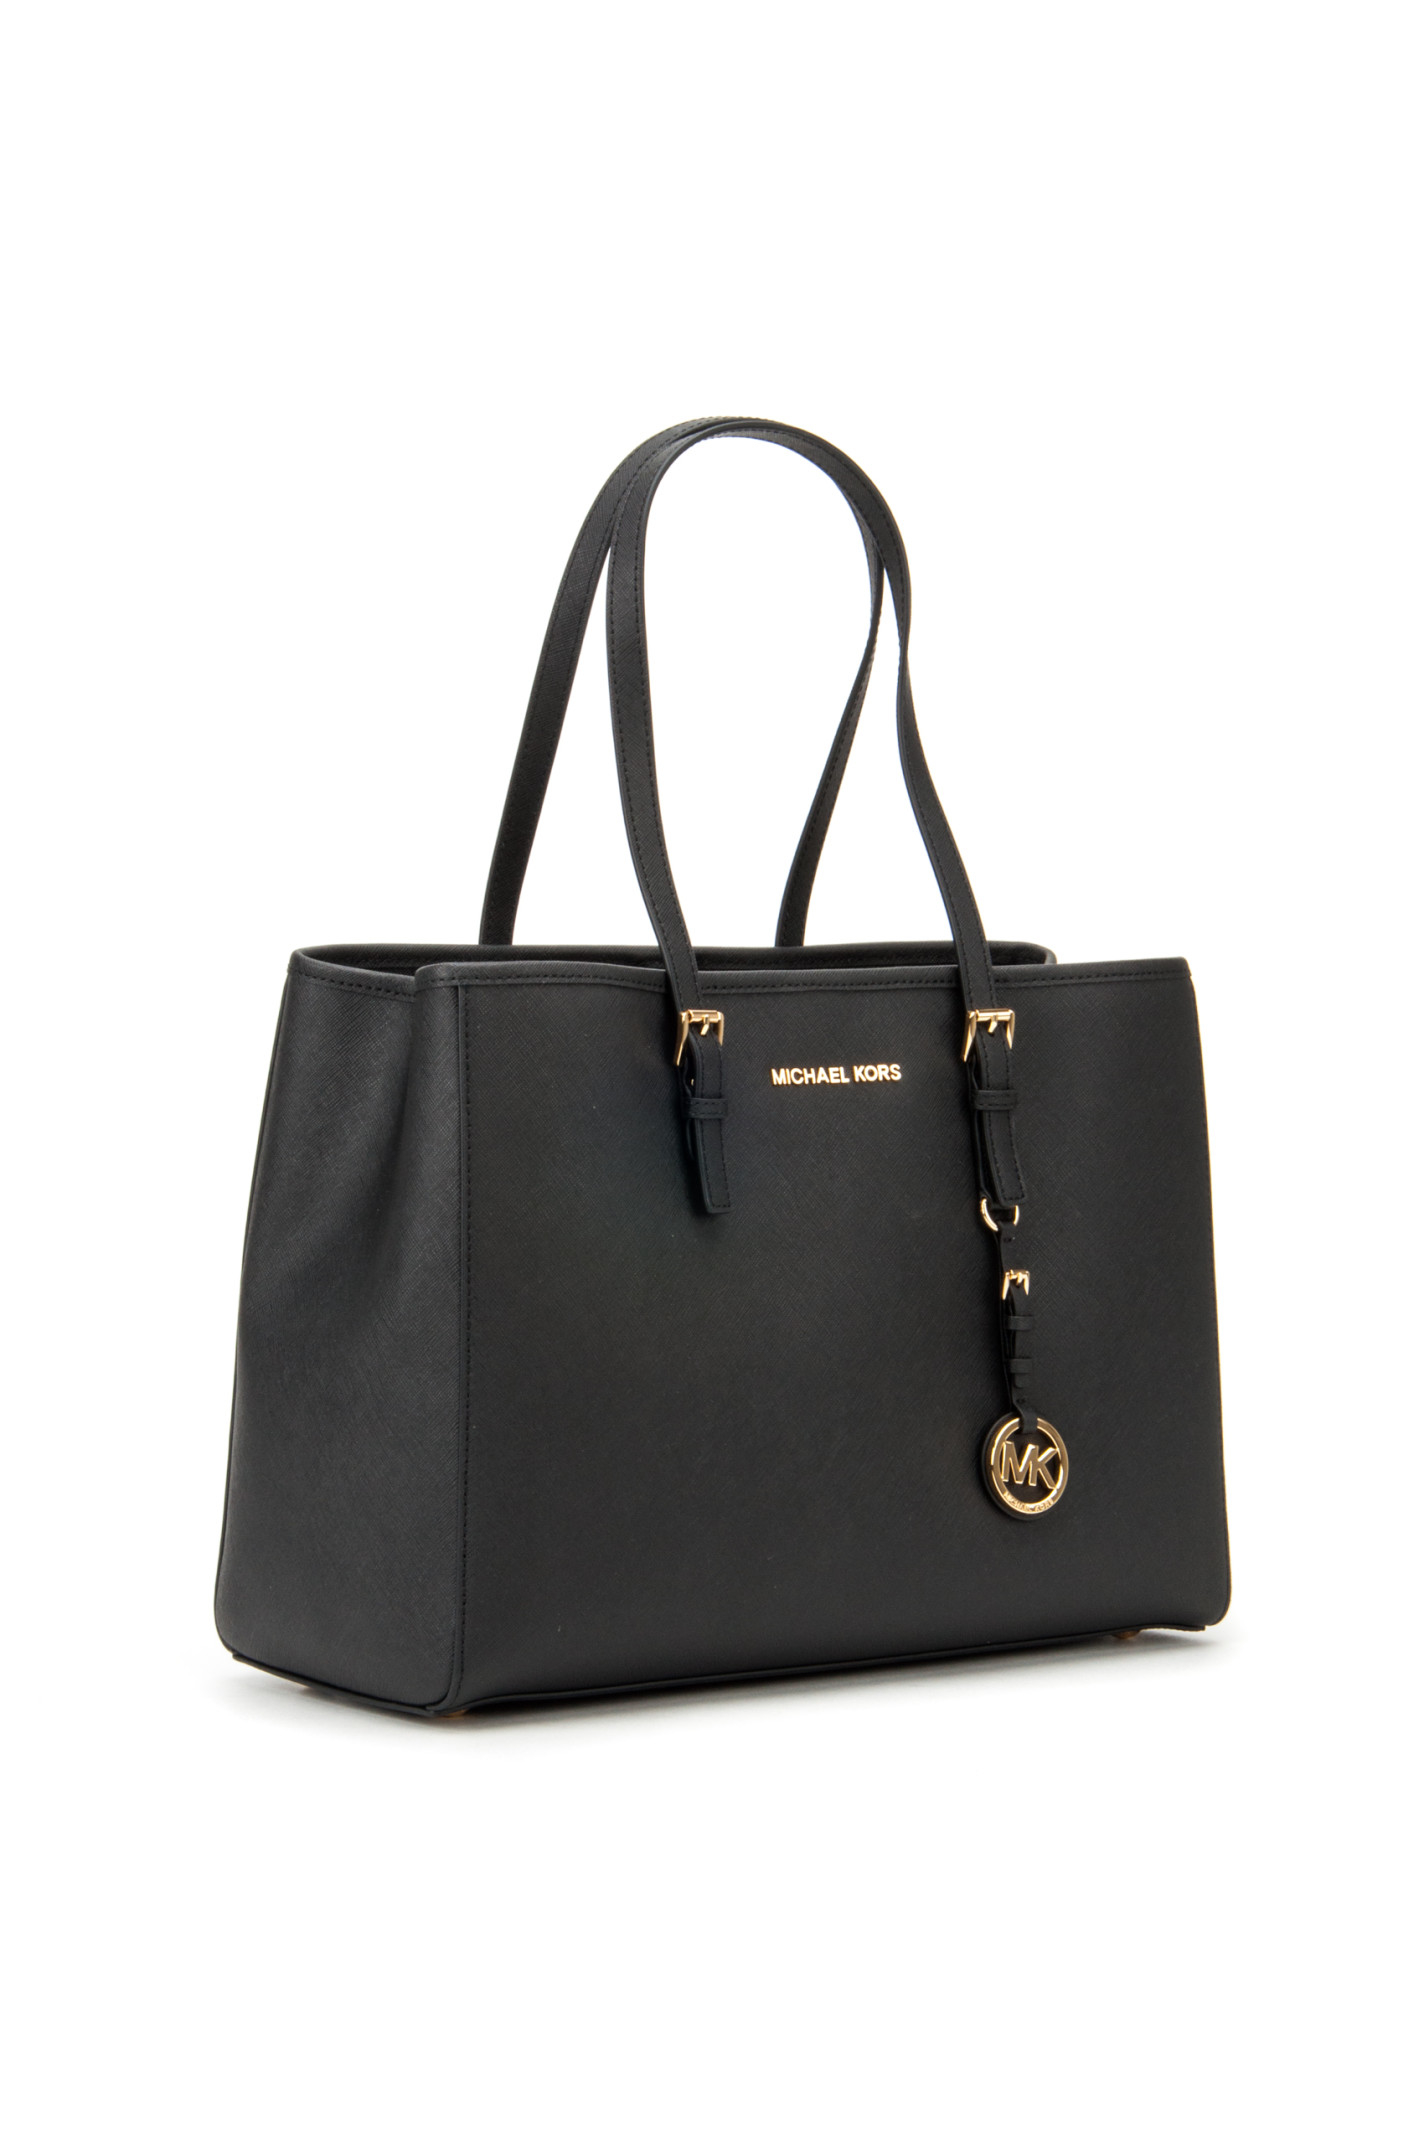 michael michael kors jet set travel tote bag in black lyst. Black Bedroom Furniture Sets. Home Design Ideas